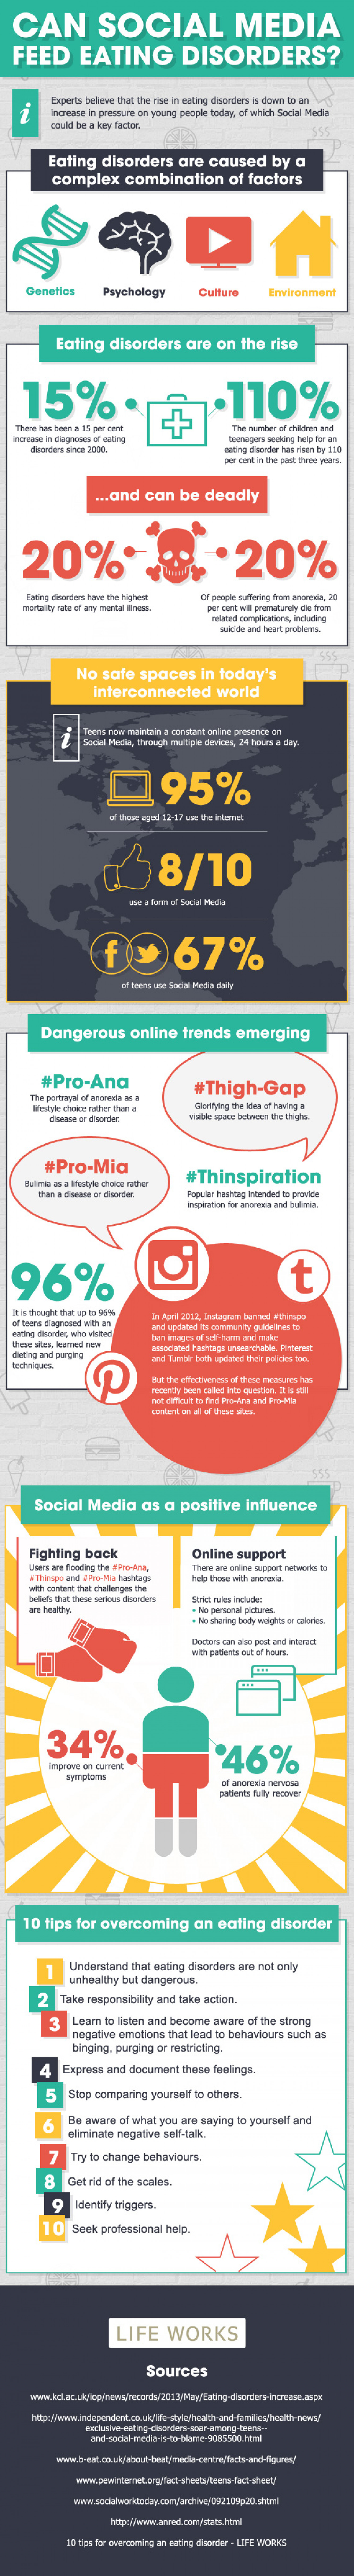 Can Social Media Feed Eating Disorders? Infographic